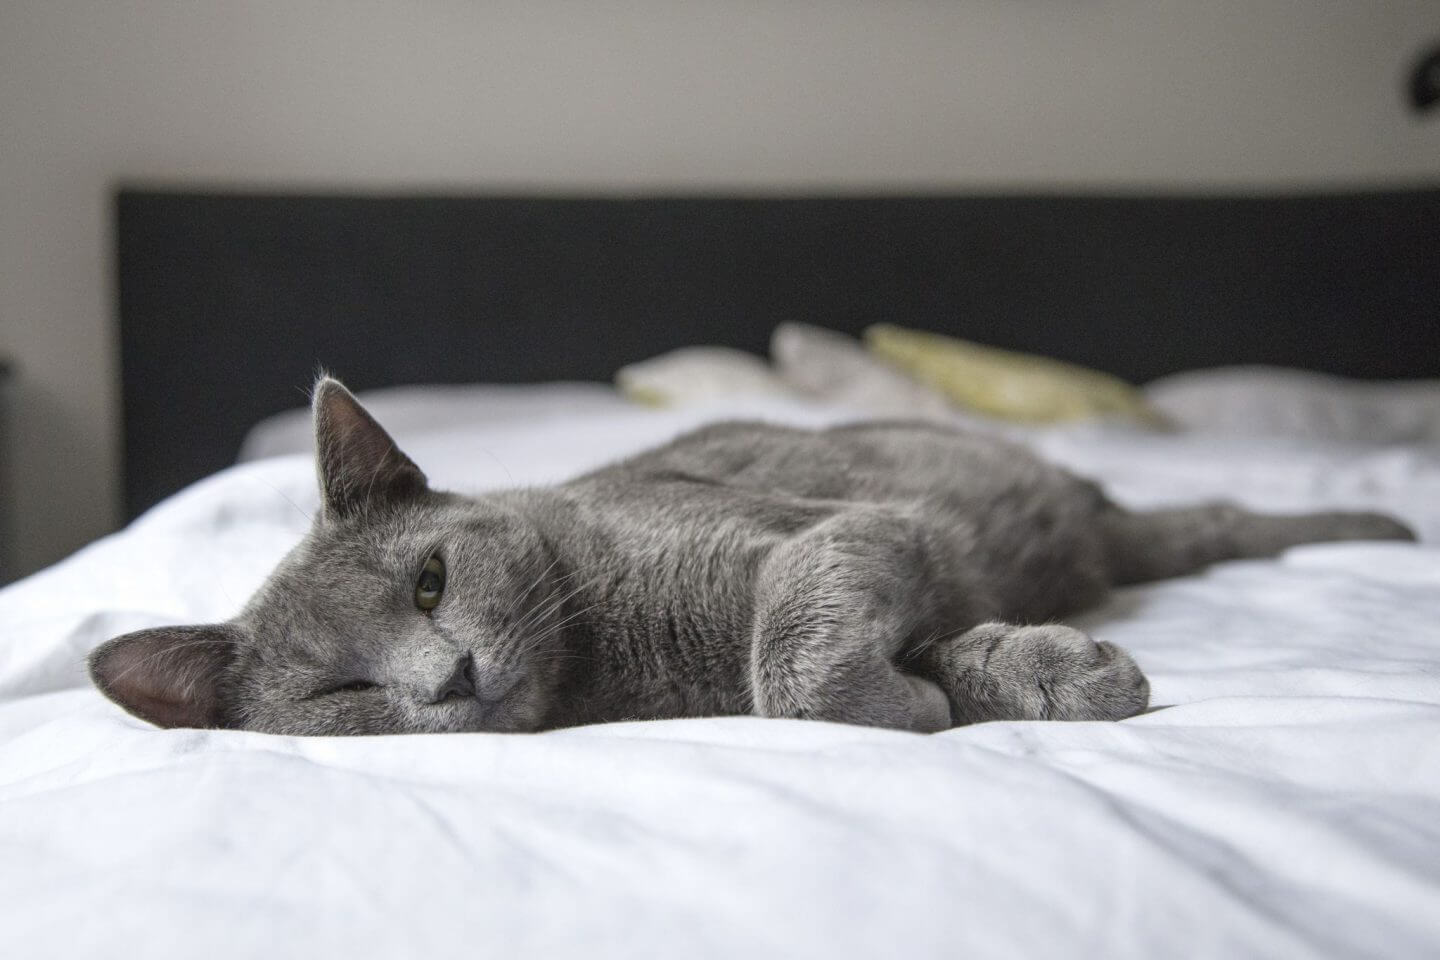 Picture of grey cat stretching on white bedsheets